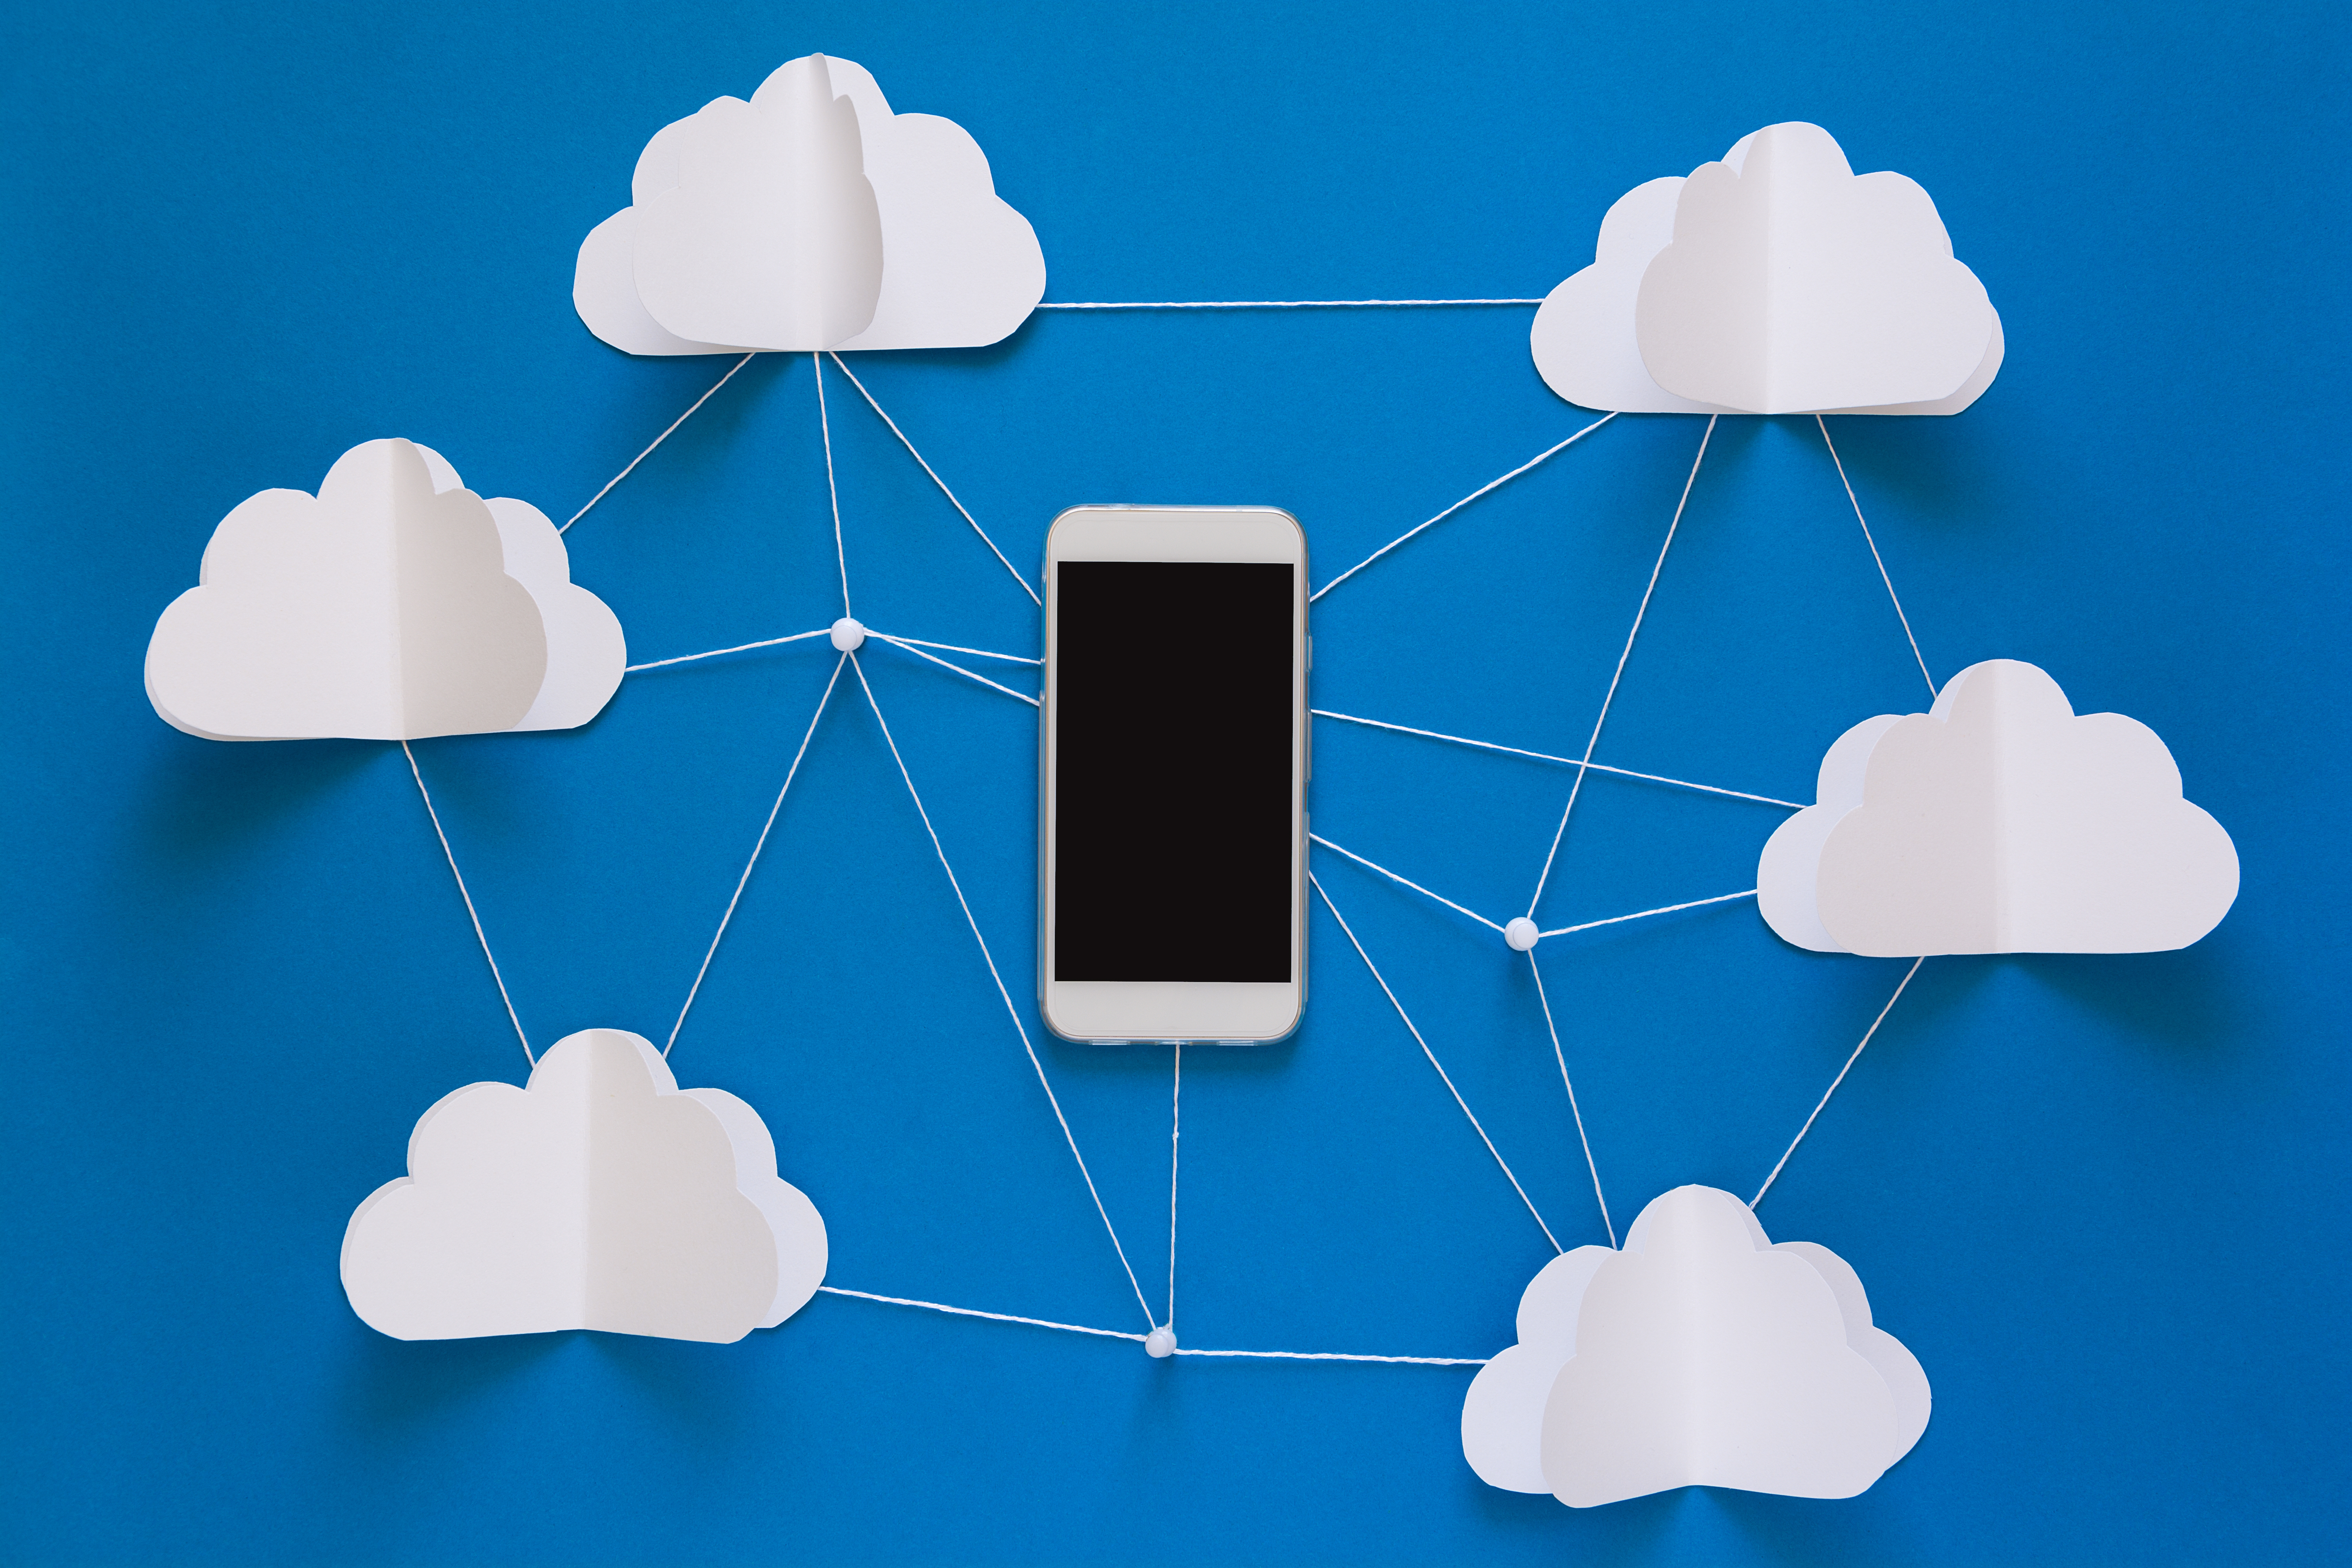 network-connection-and-cloud-storage-technology-co-security-risk